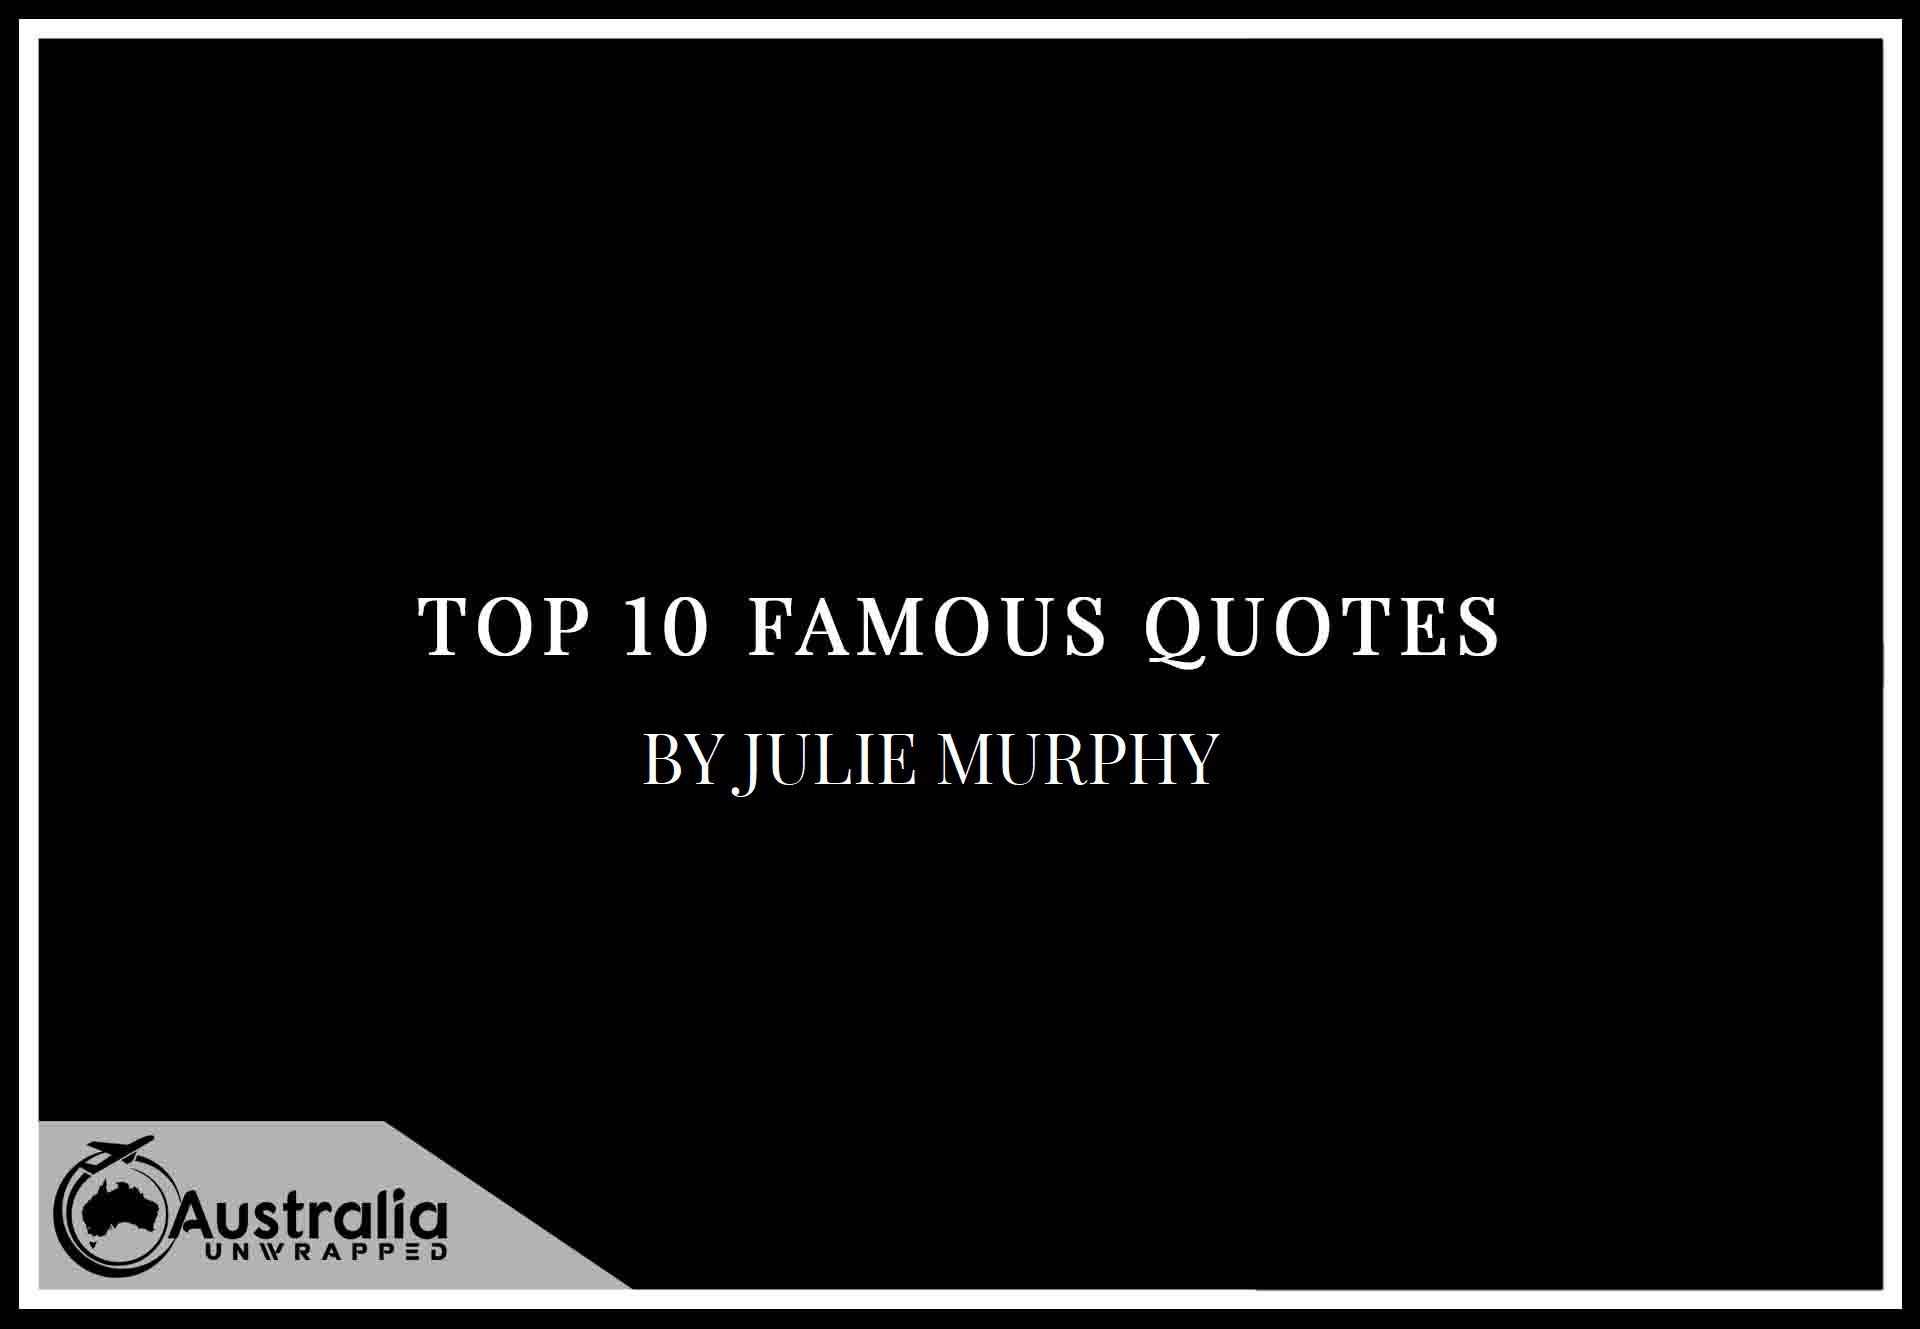 Top 10 Famous Quotes by Author Julie Murphy